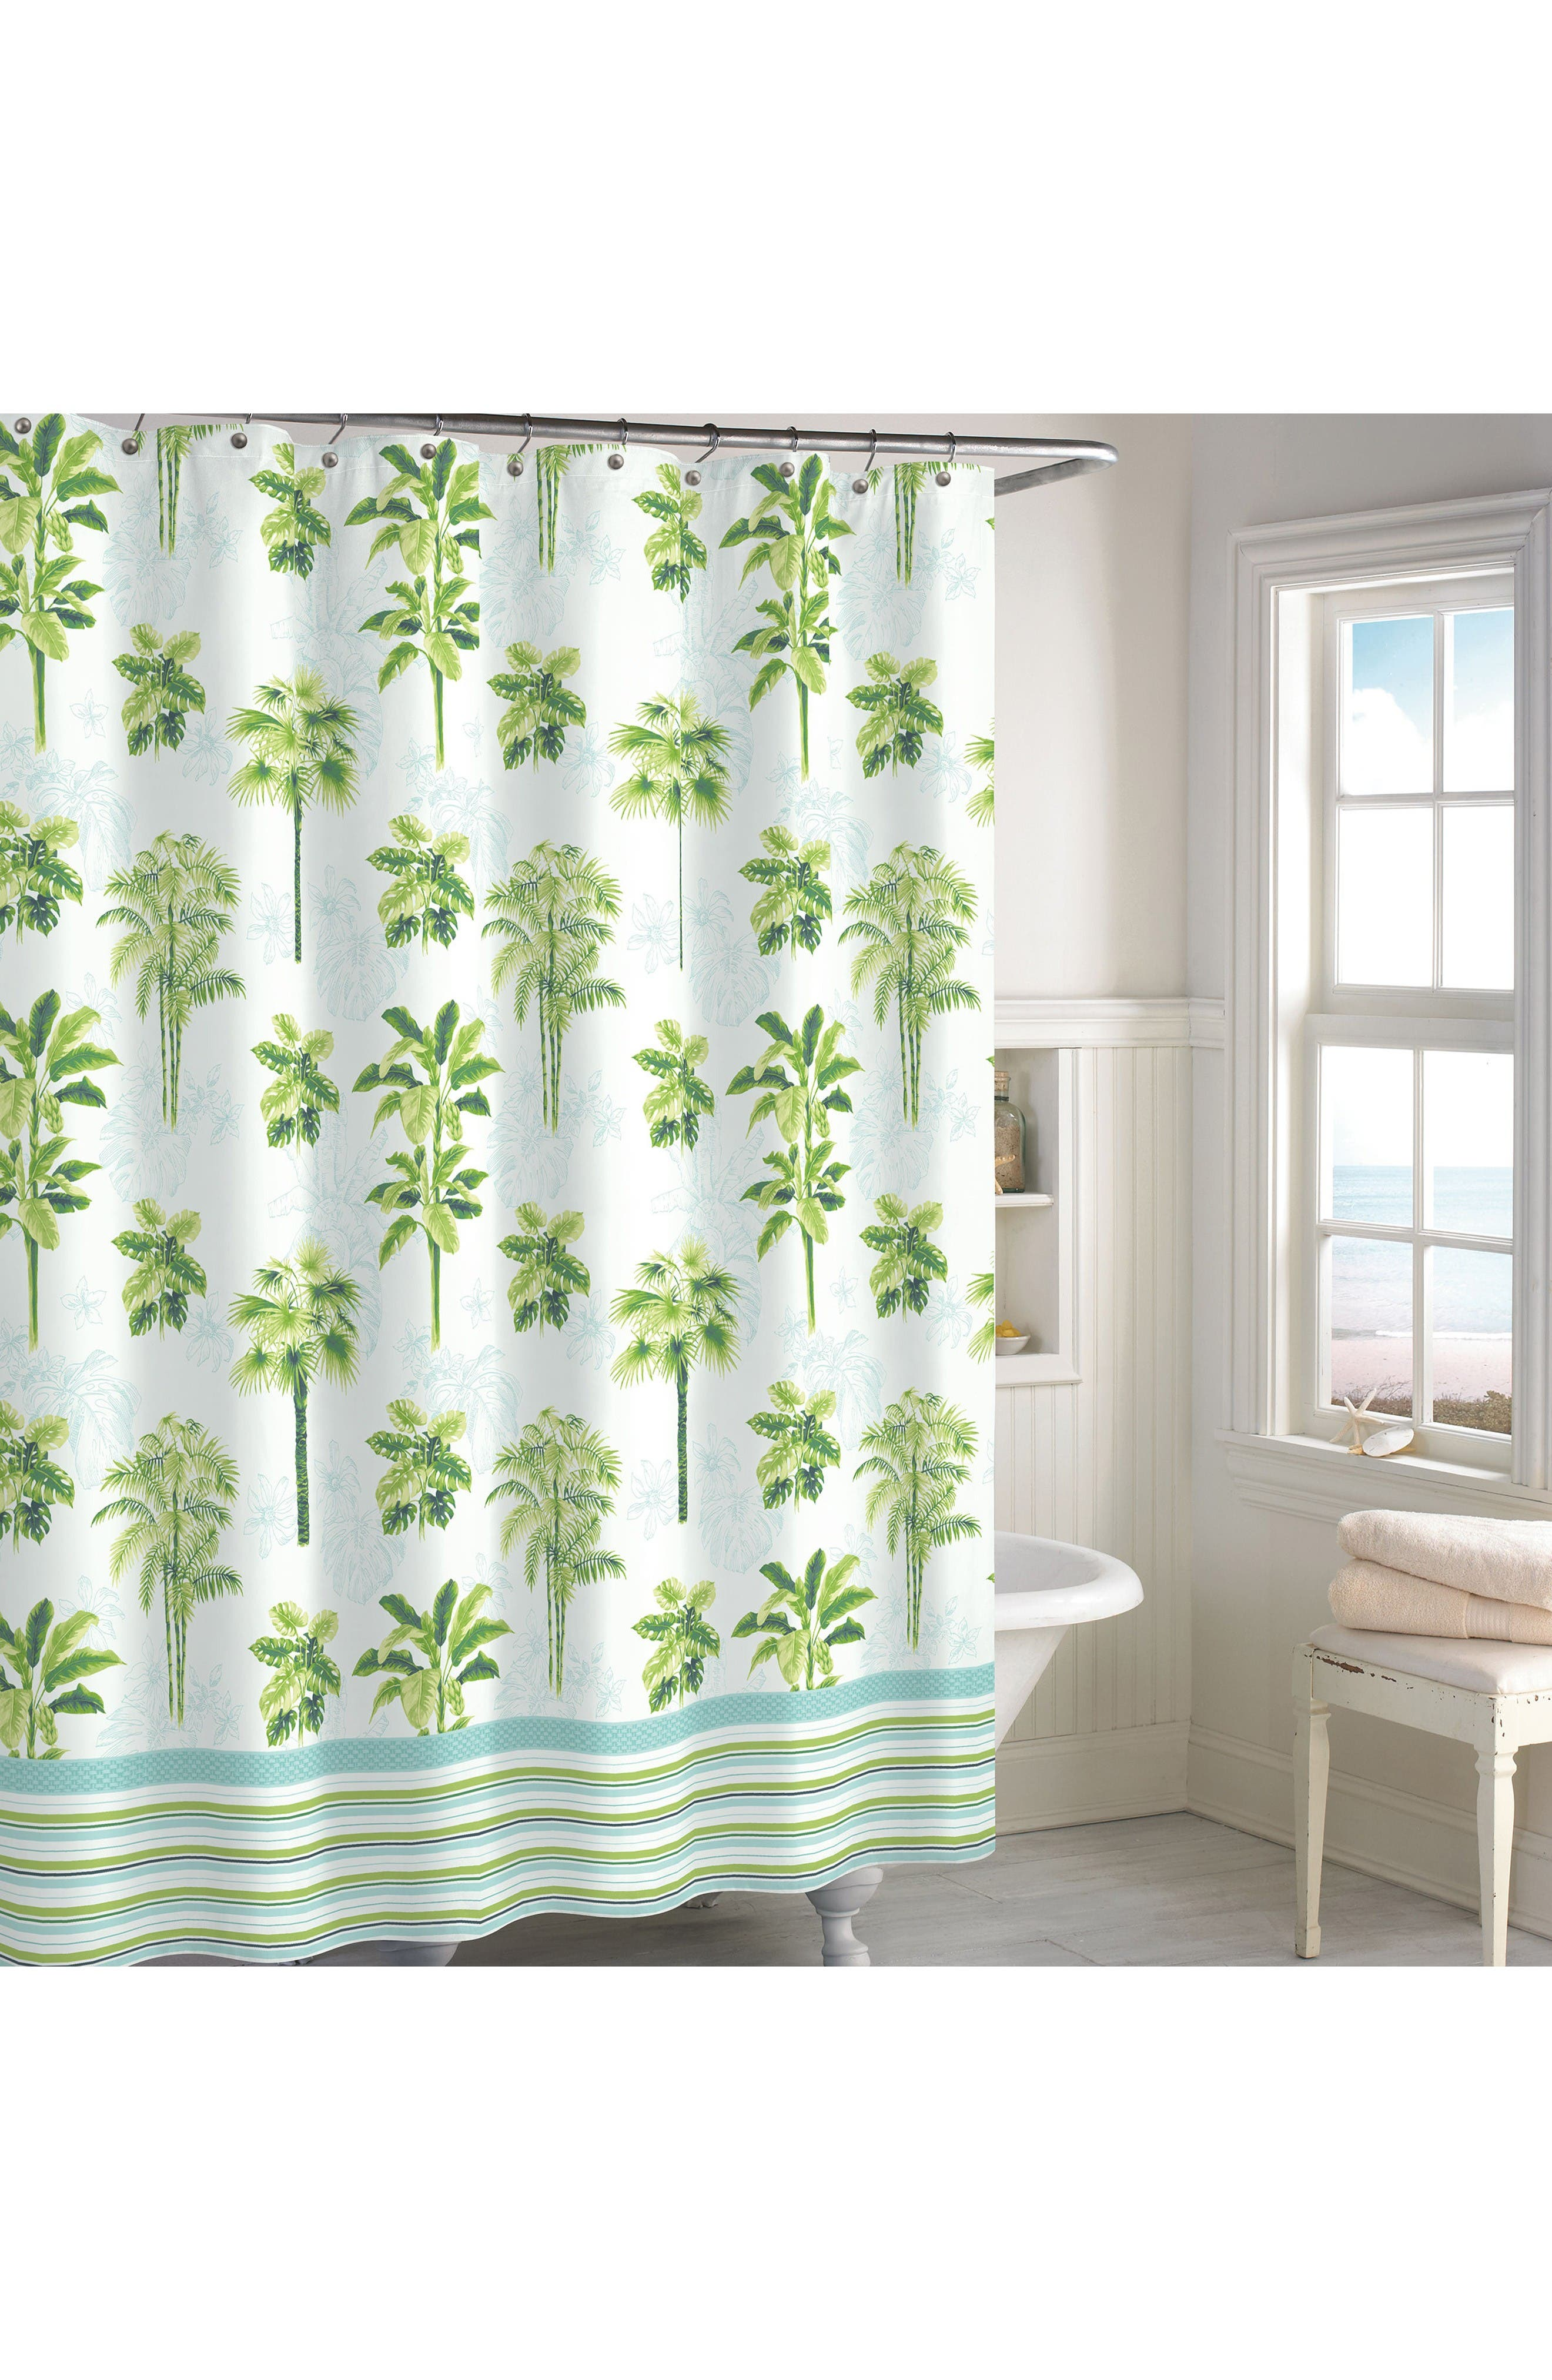 Alternate Image 1 Selected - Destinations Tropical Palm Shower Curtain